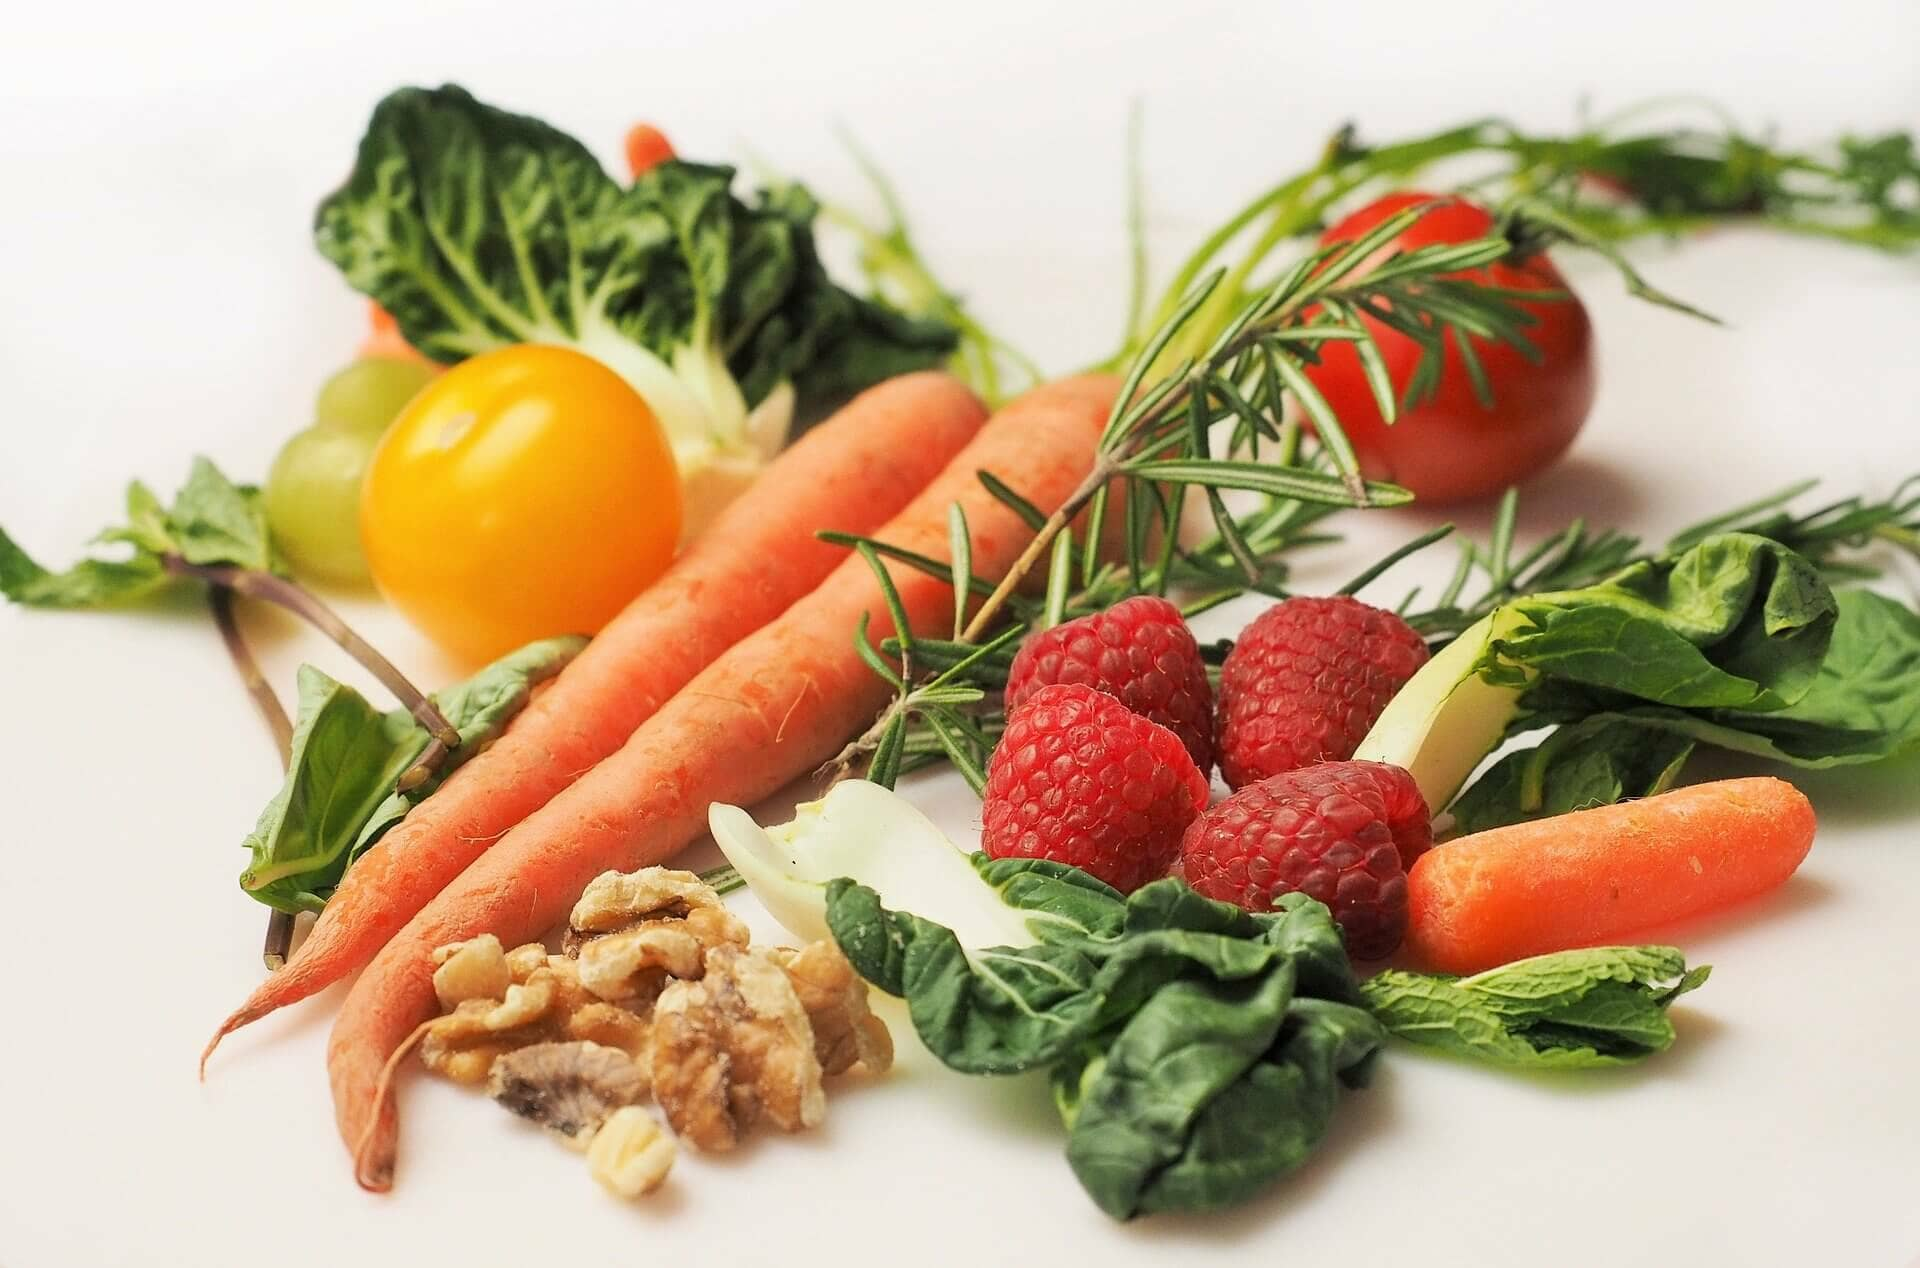 photo of vegetables and other foods that provide good nutrition during pregnancy